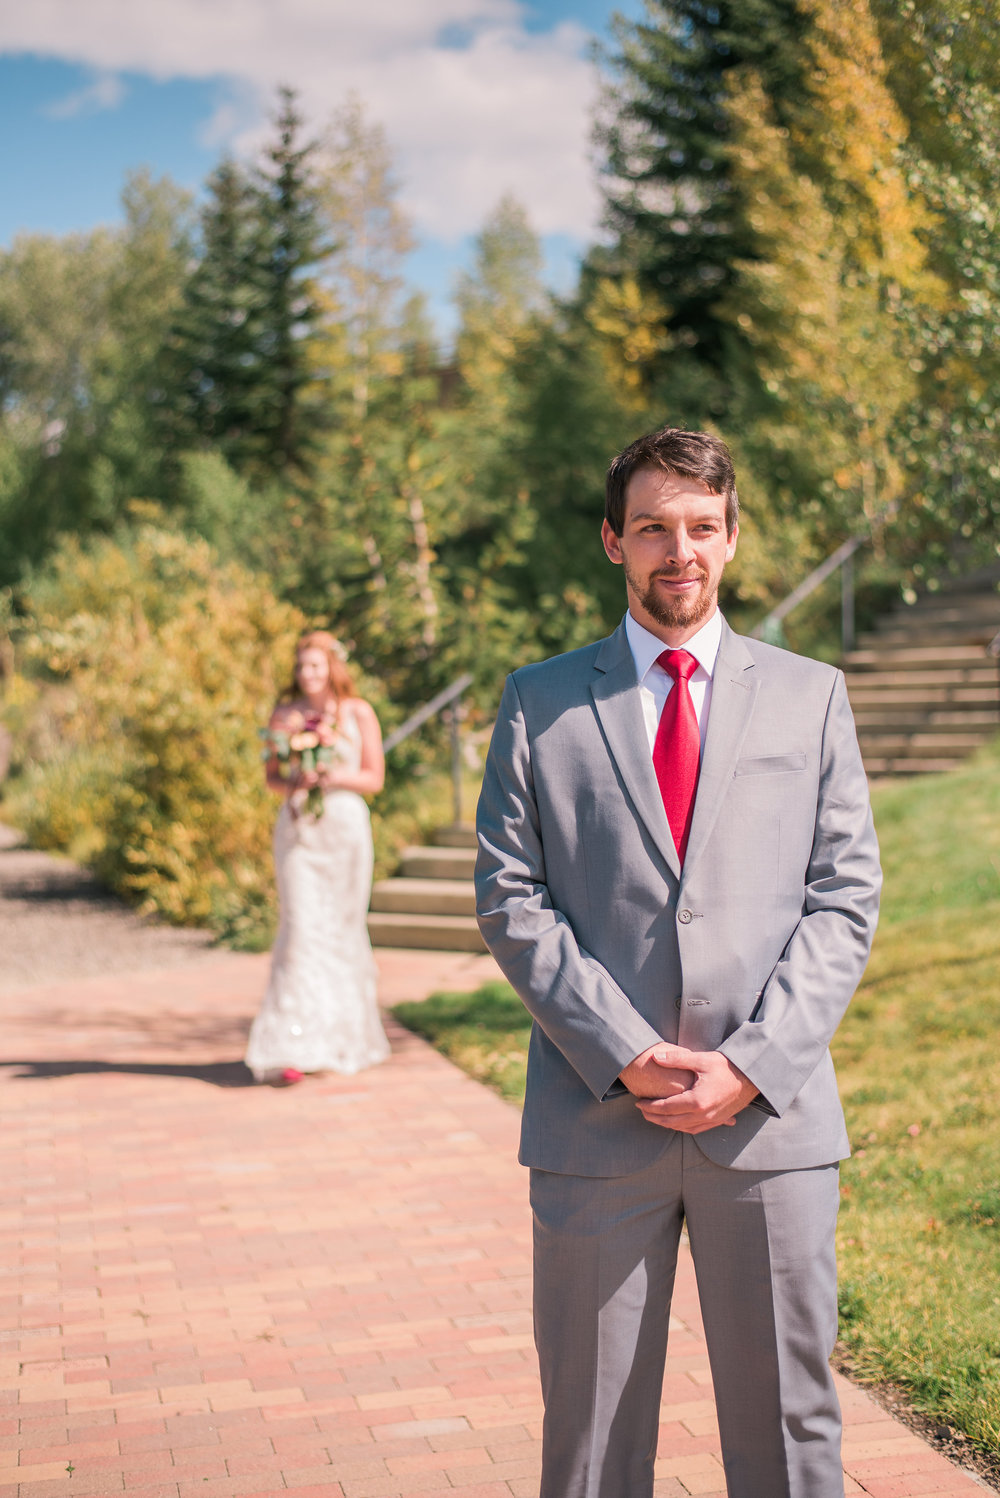 A Mount Crested Butte Colorado Wedding - Amanda Matila Photography Colorado Wedding Photographer -- Wedding Blog-The Overwhelmed Bride